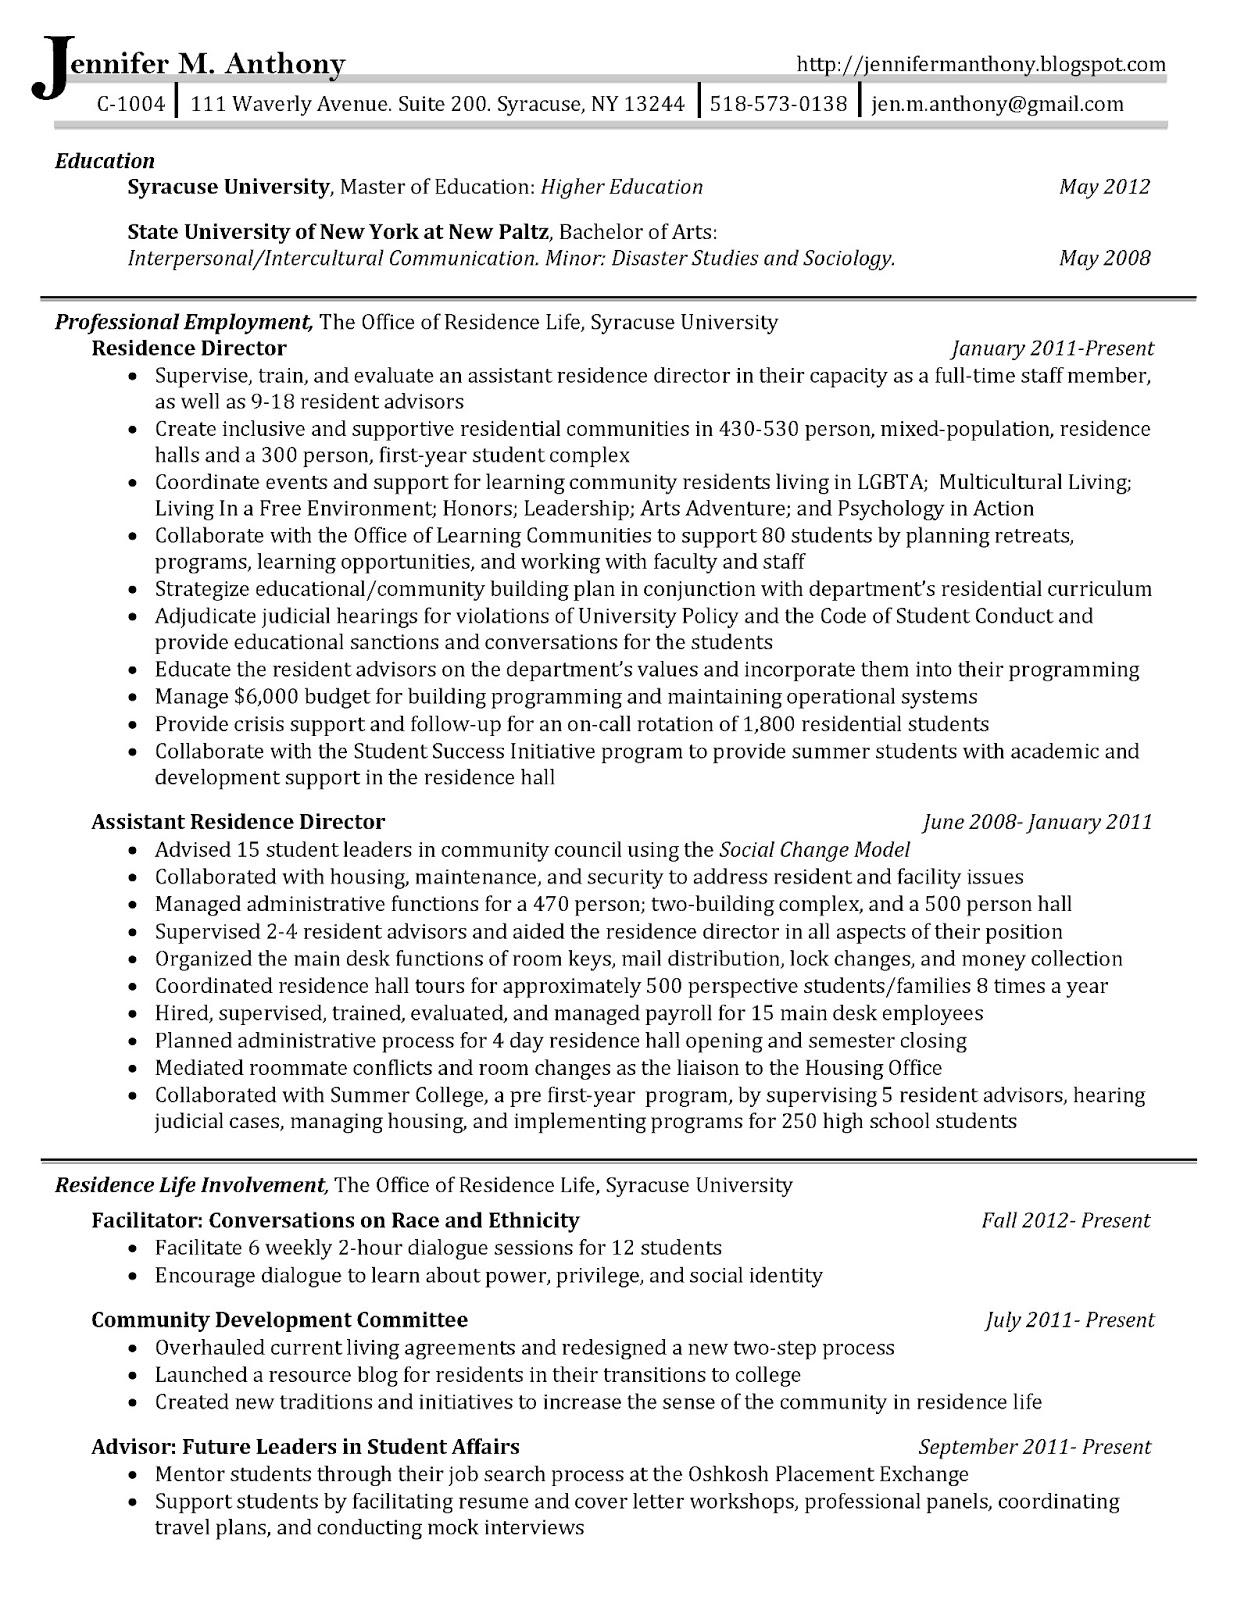 Jennifer anthony resume